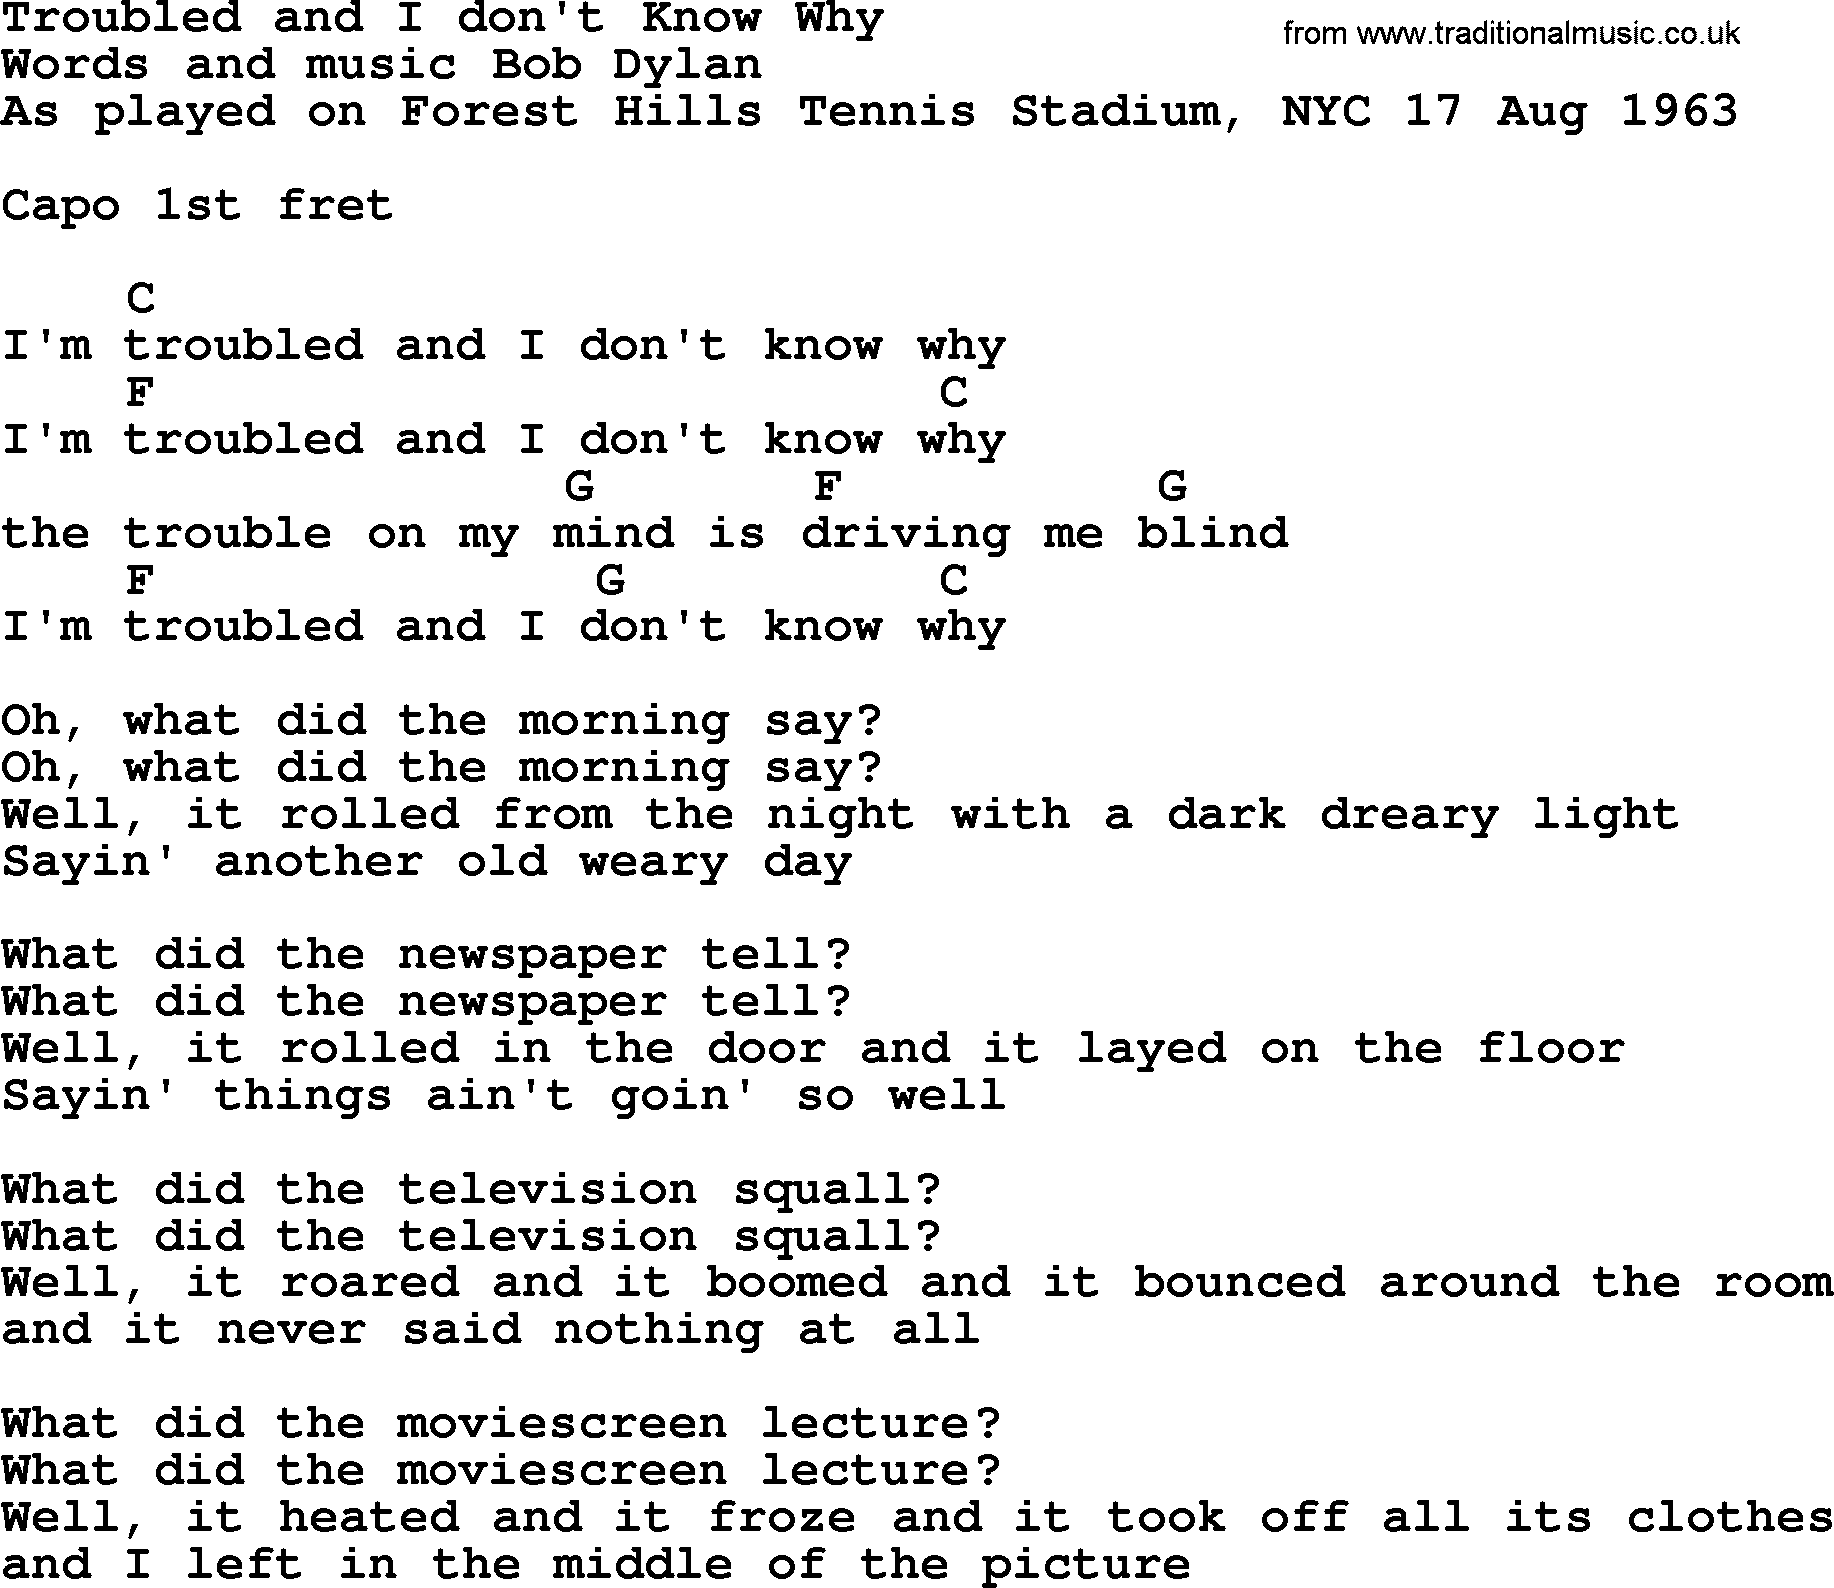 Bob dylan song troubled and i dont know why lyrics and chords bob dylan song lyrics with chords troubled and i dont know why hexwebz Image collections